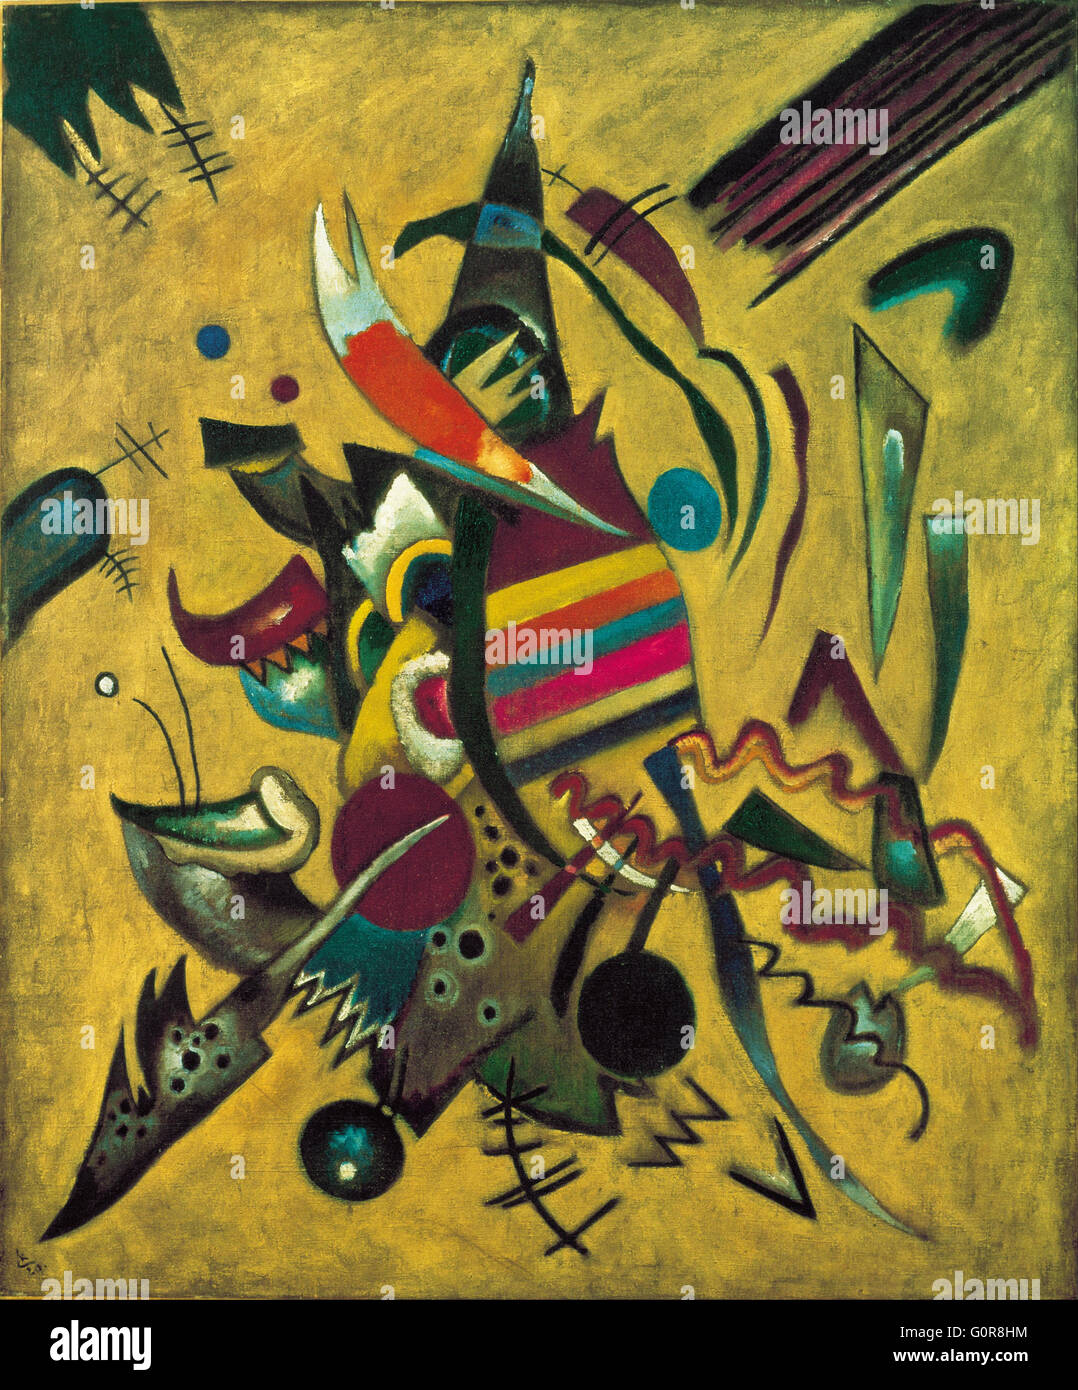 Wassily Kandinsky, 1920 - Points - Ohara Museum of Art, Japan - Stock Image